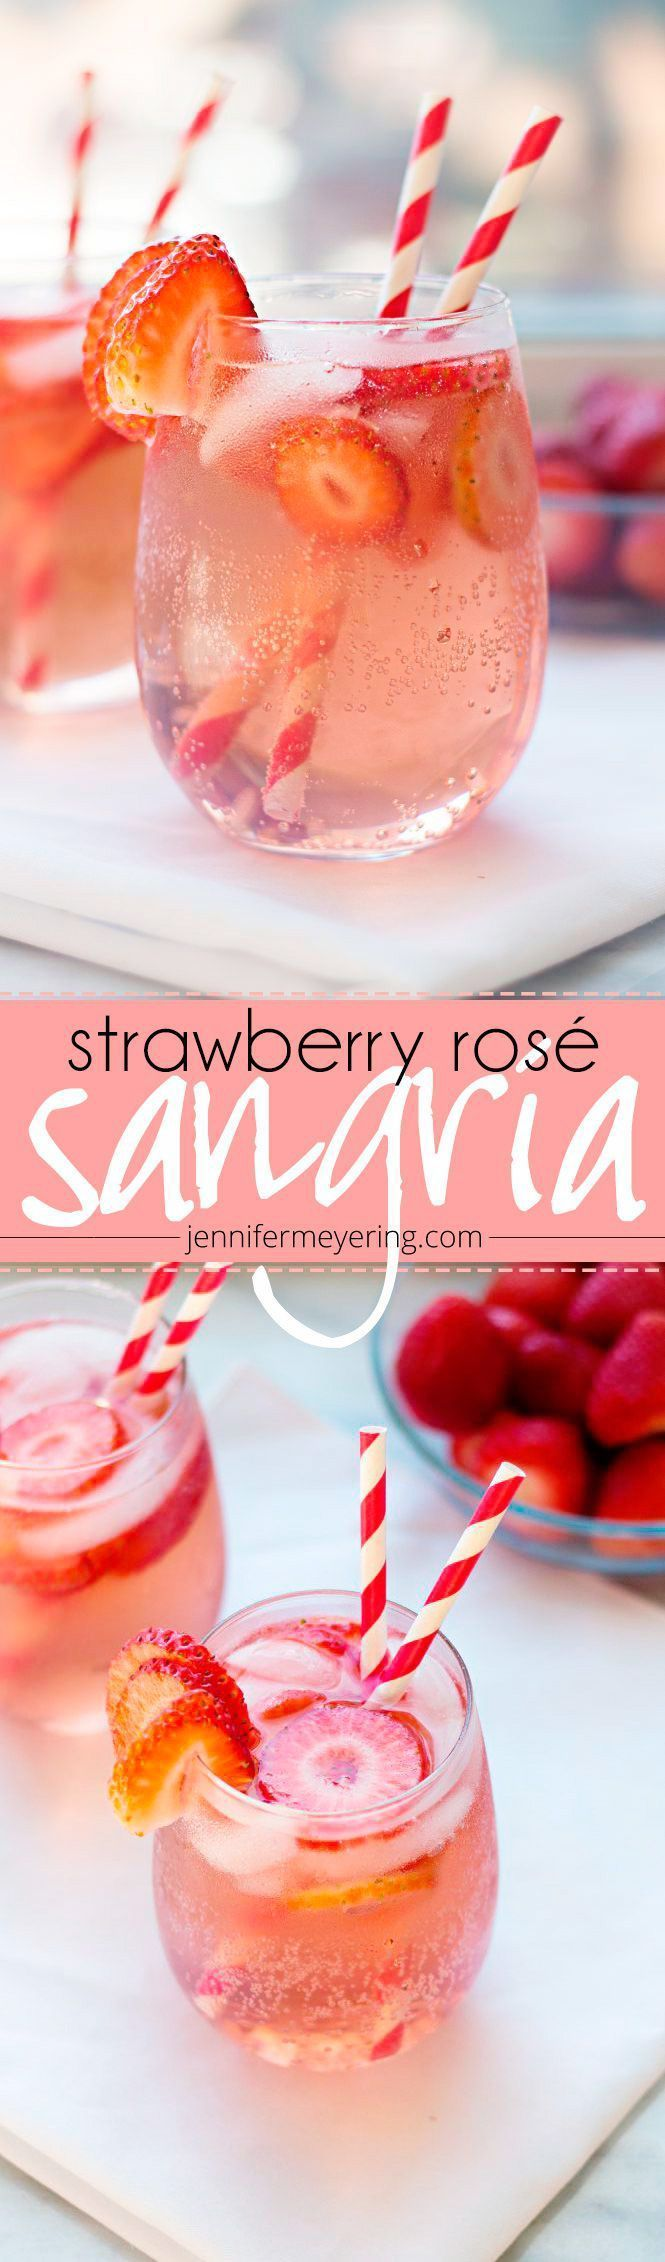 "Strawberry Ros Sangria | <a href="""" rel=""nofollow"" target=""_blank""></a>"